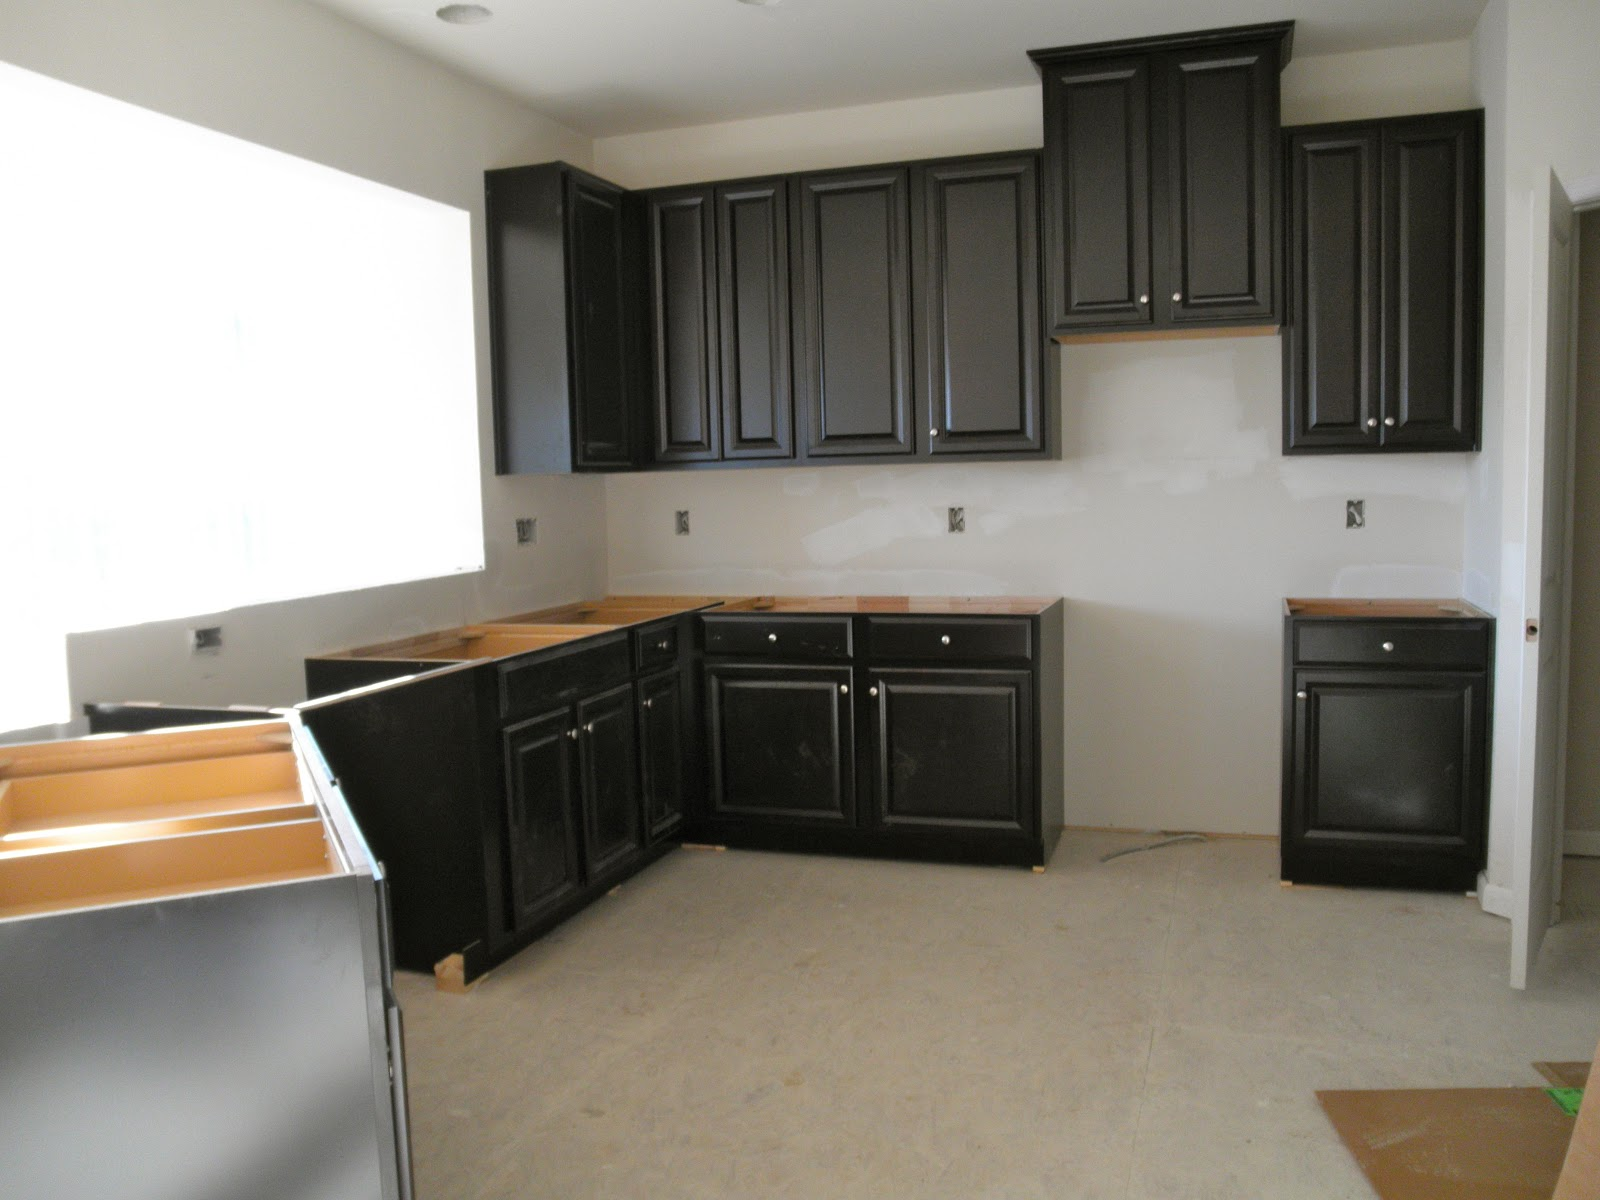 Dreaming Of A Ryan Homes Florence Cabinets And A Mistake